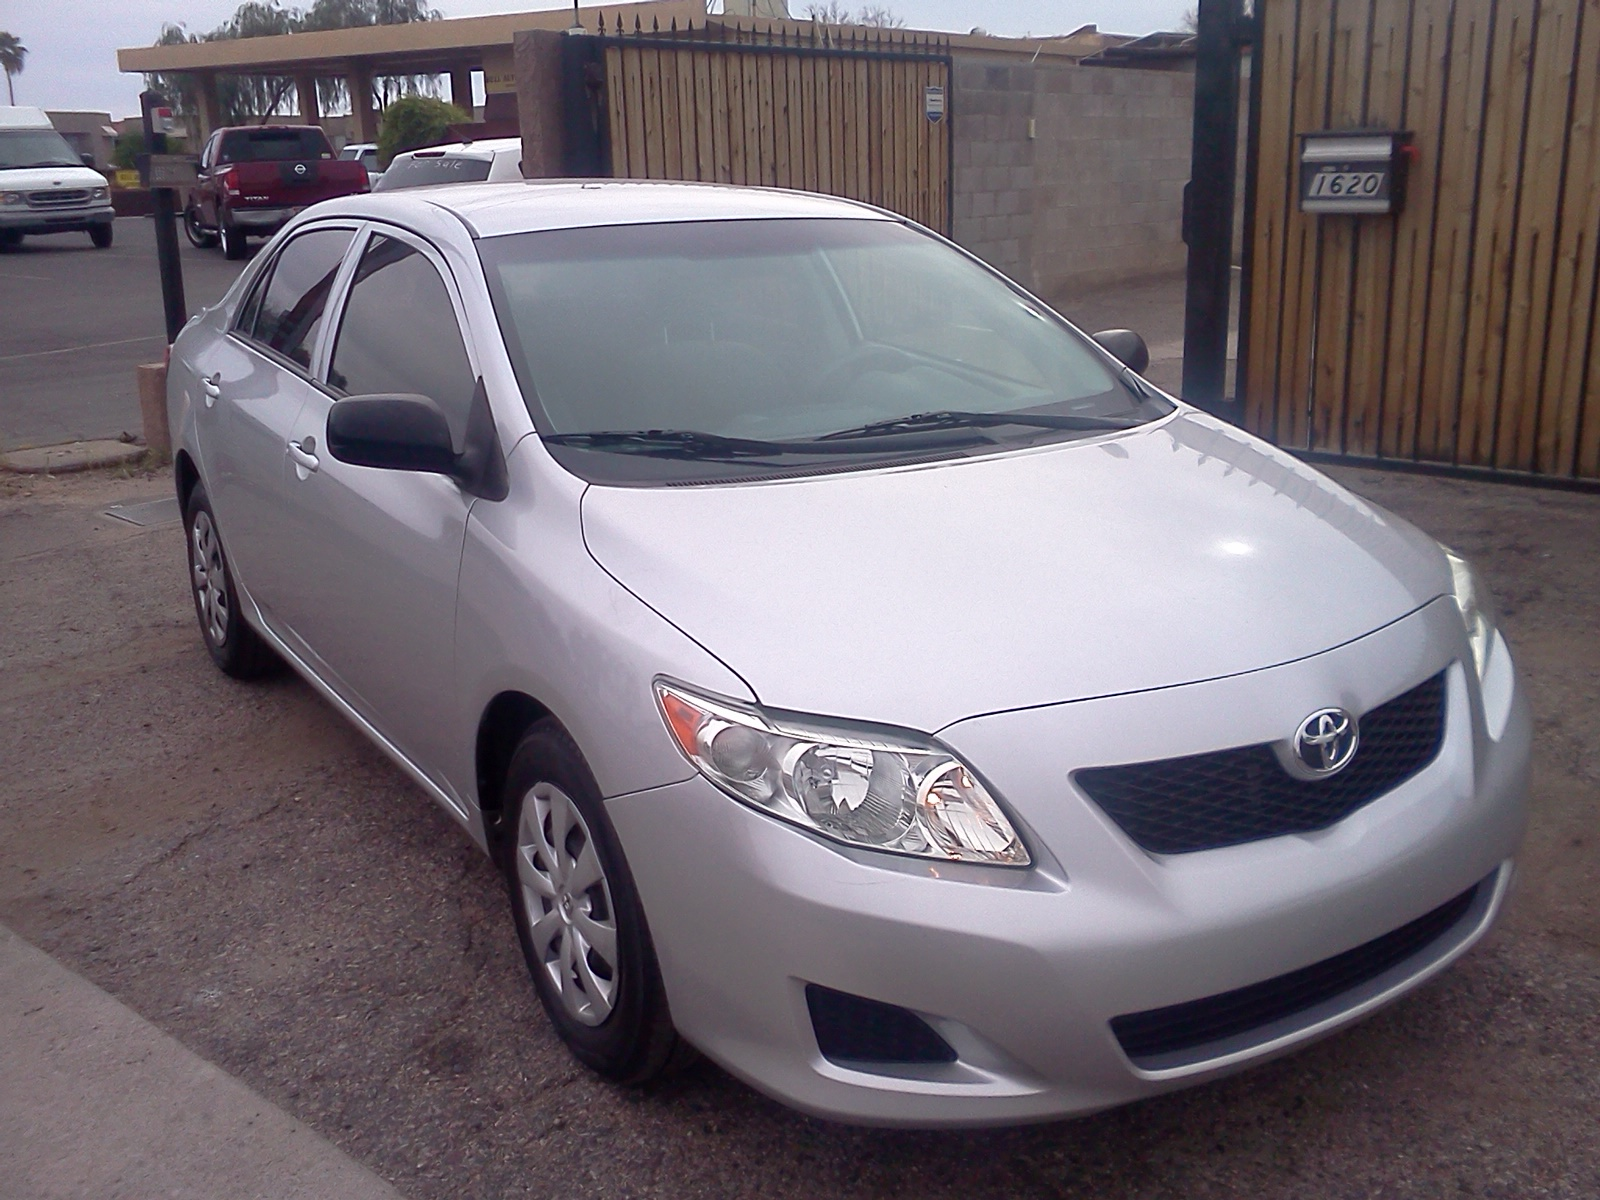 Very Nice Silver Colored 2010 Toyota Corolla Base Automatic. The Car Looks  Great Inside And Out And Is Mechanically Perfect.